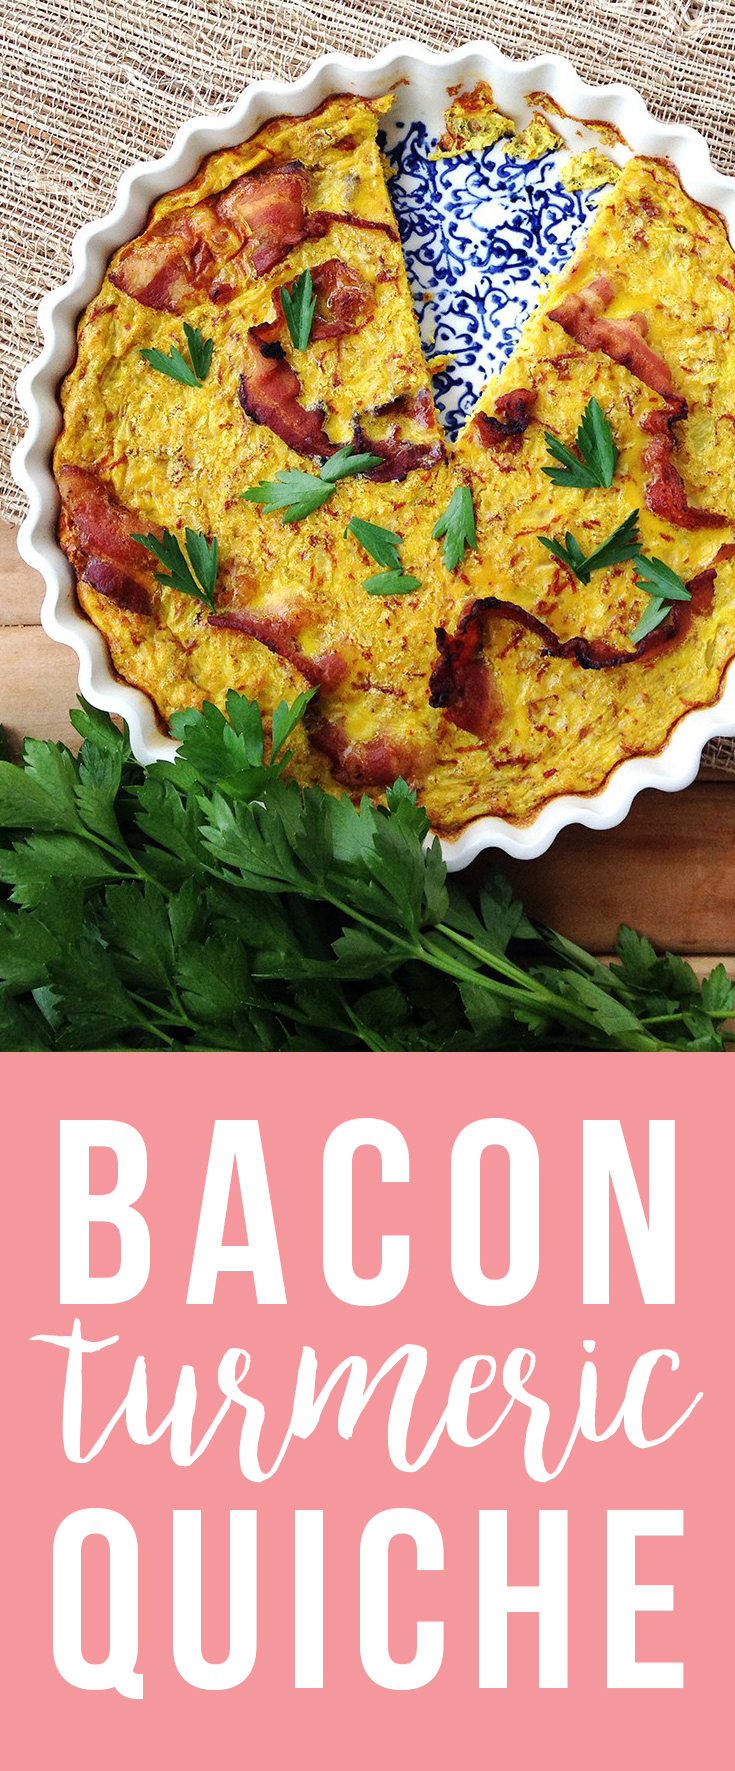 The combination of bacon, turmeric and parsley makes for a quick, easy, savory meal.